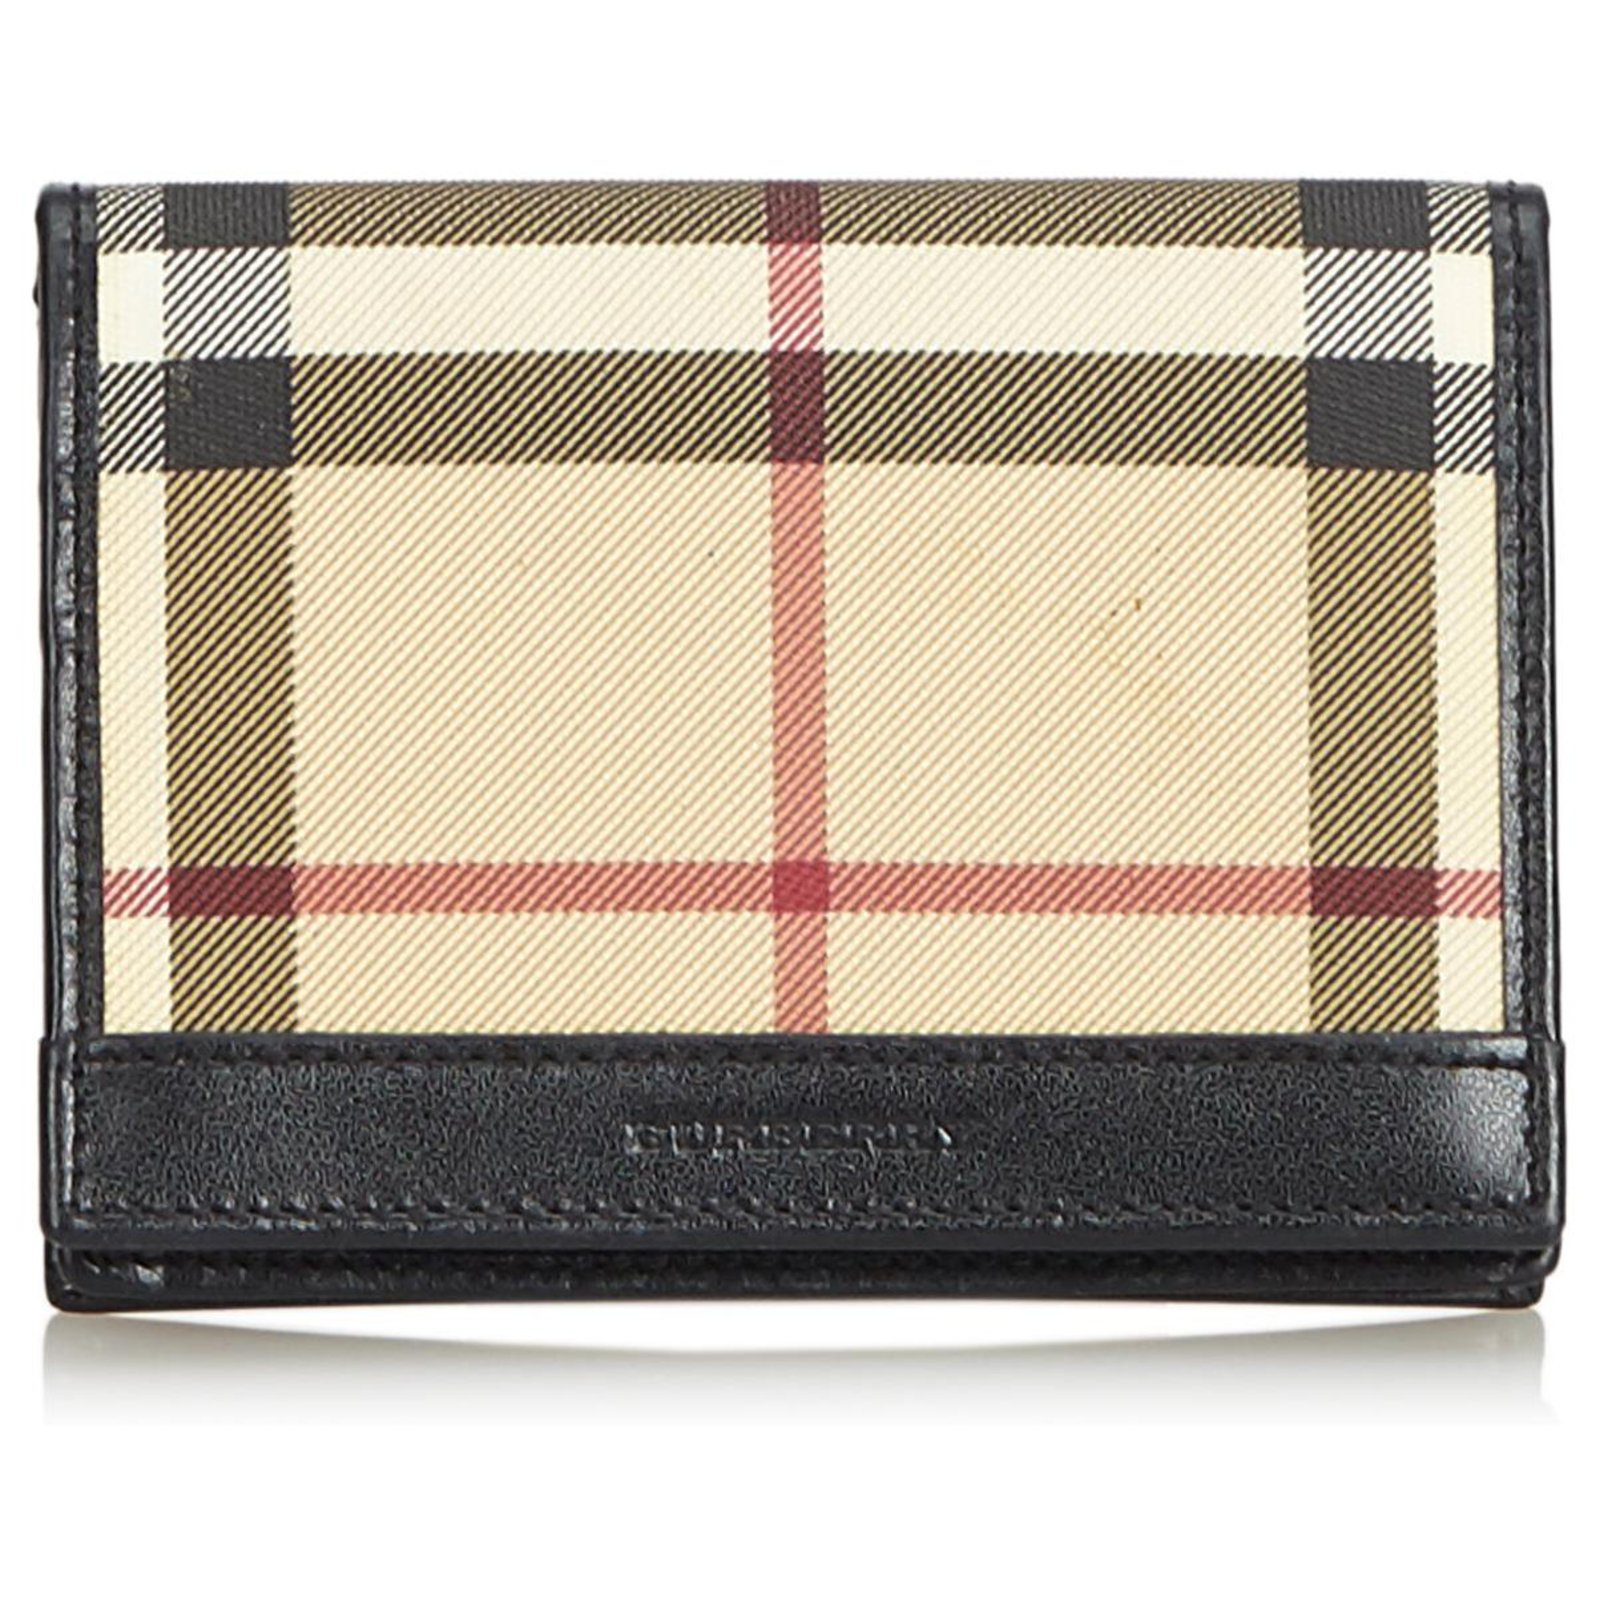 new style a1842 42140 Burberry Brown Nova Check Card Holder